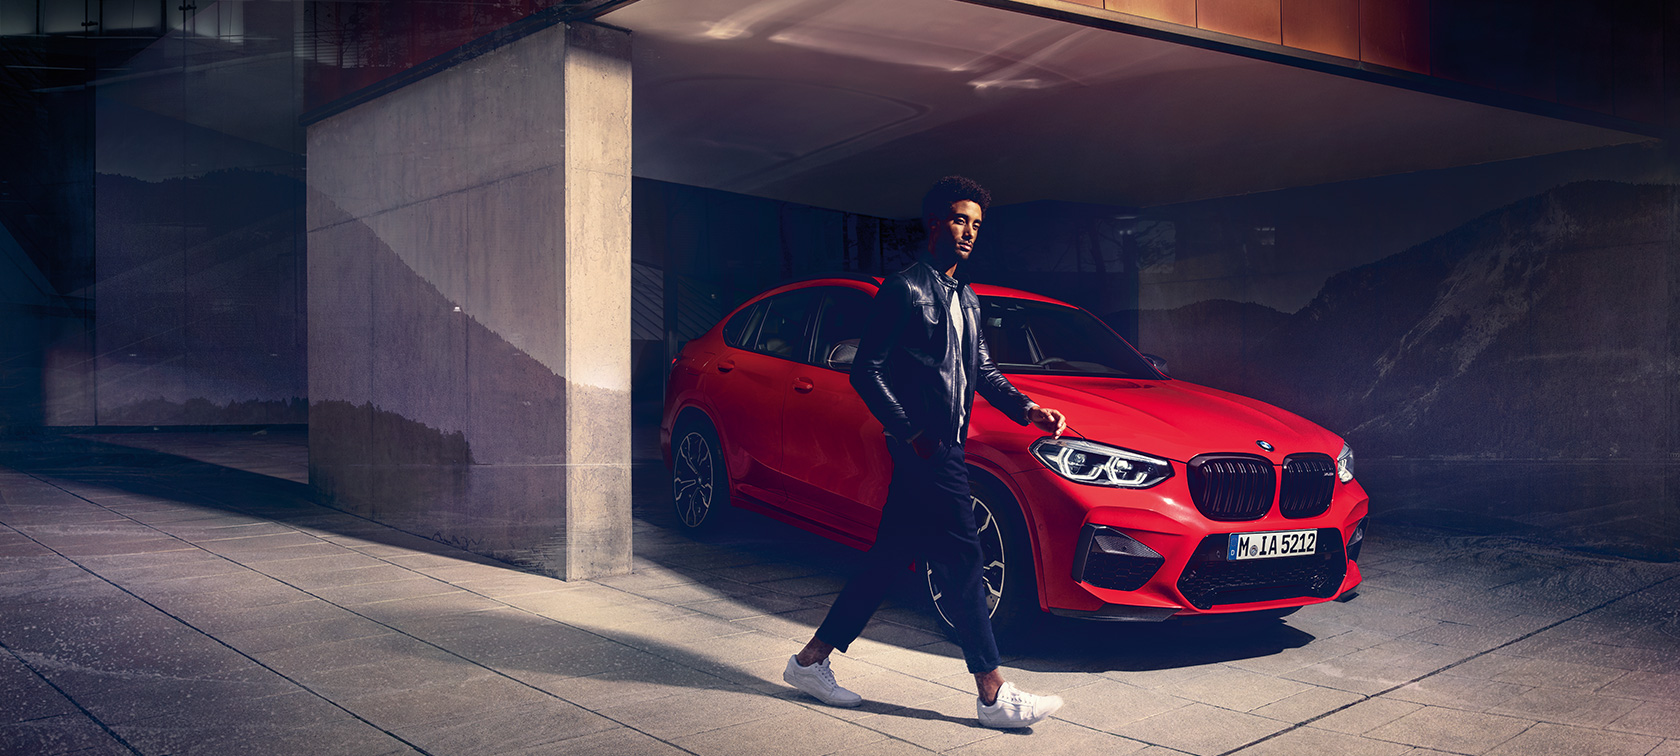 BMW X4 M Competition in Toronto Red metallic, exterior, three-quarter side view with young man.